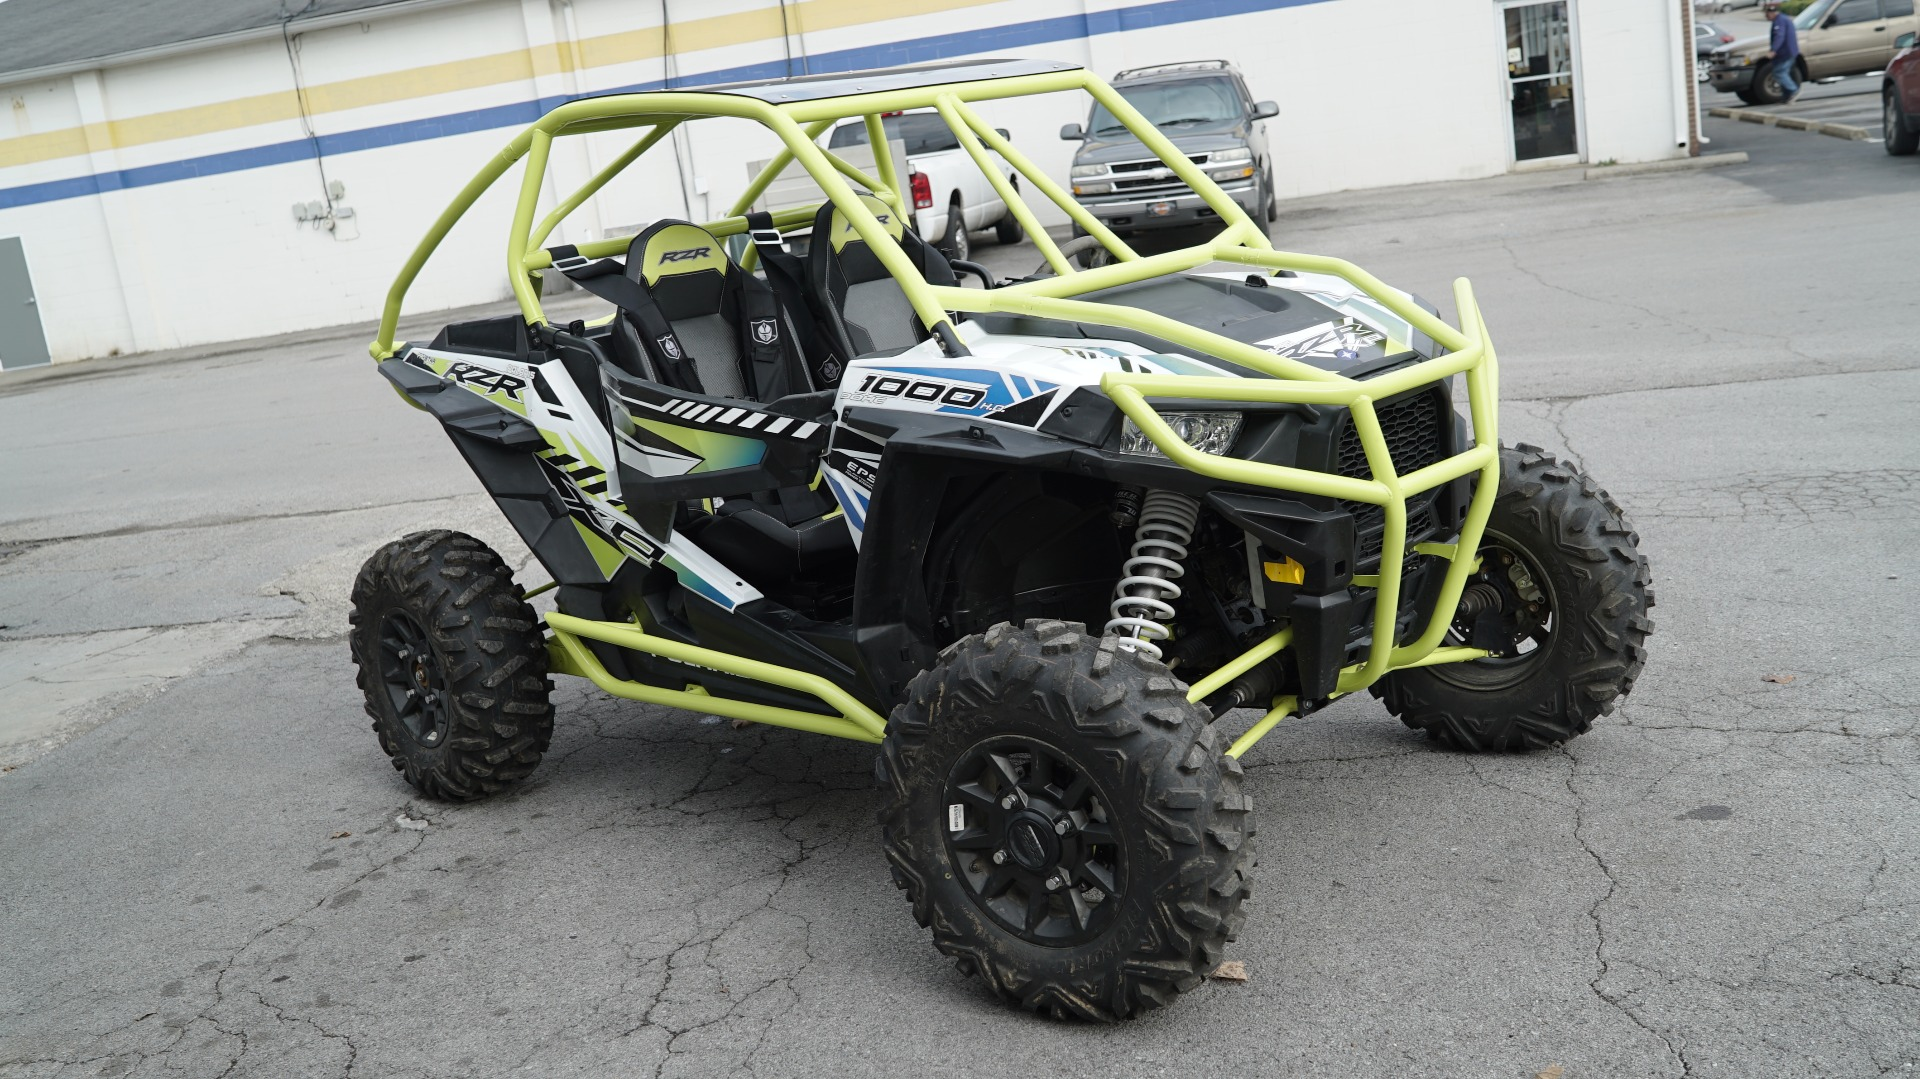 Polaris RZR 1000 with Yellow Roll Cage Image 14